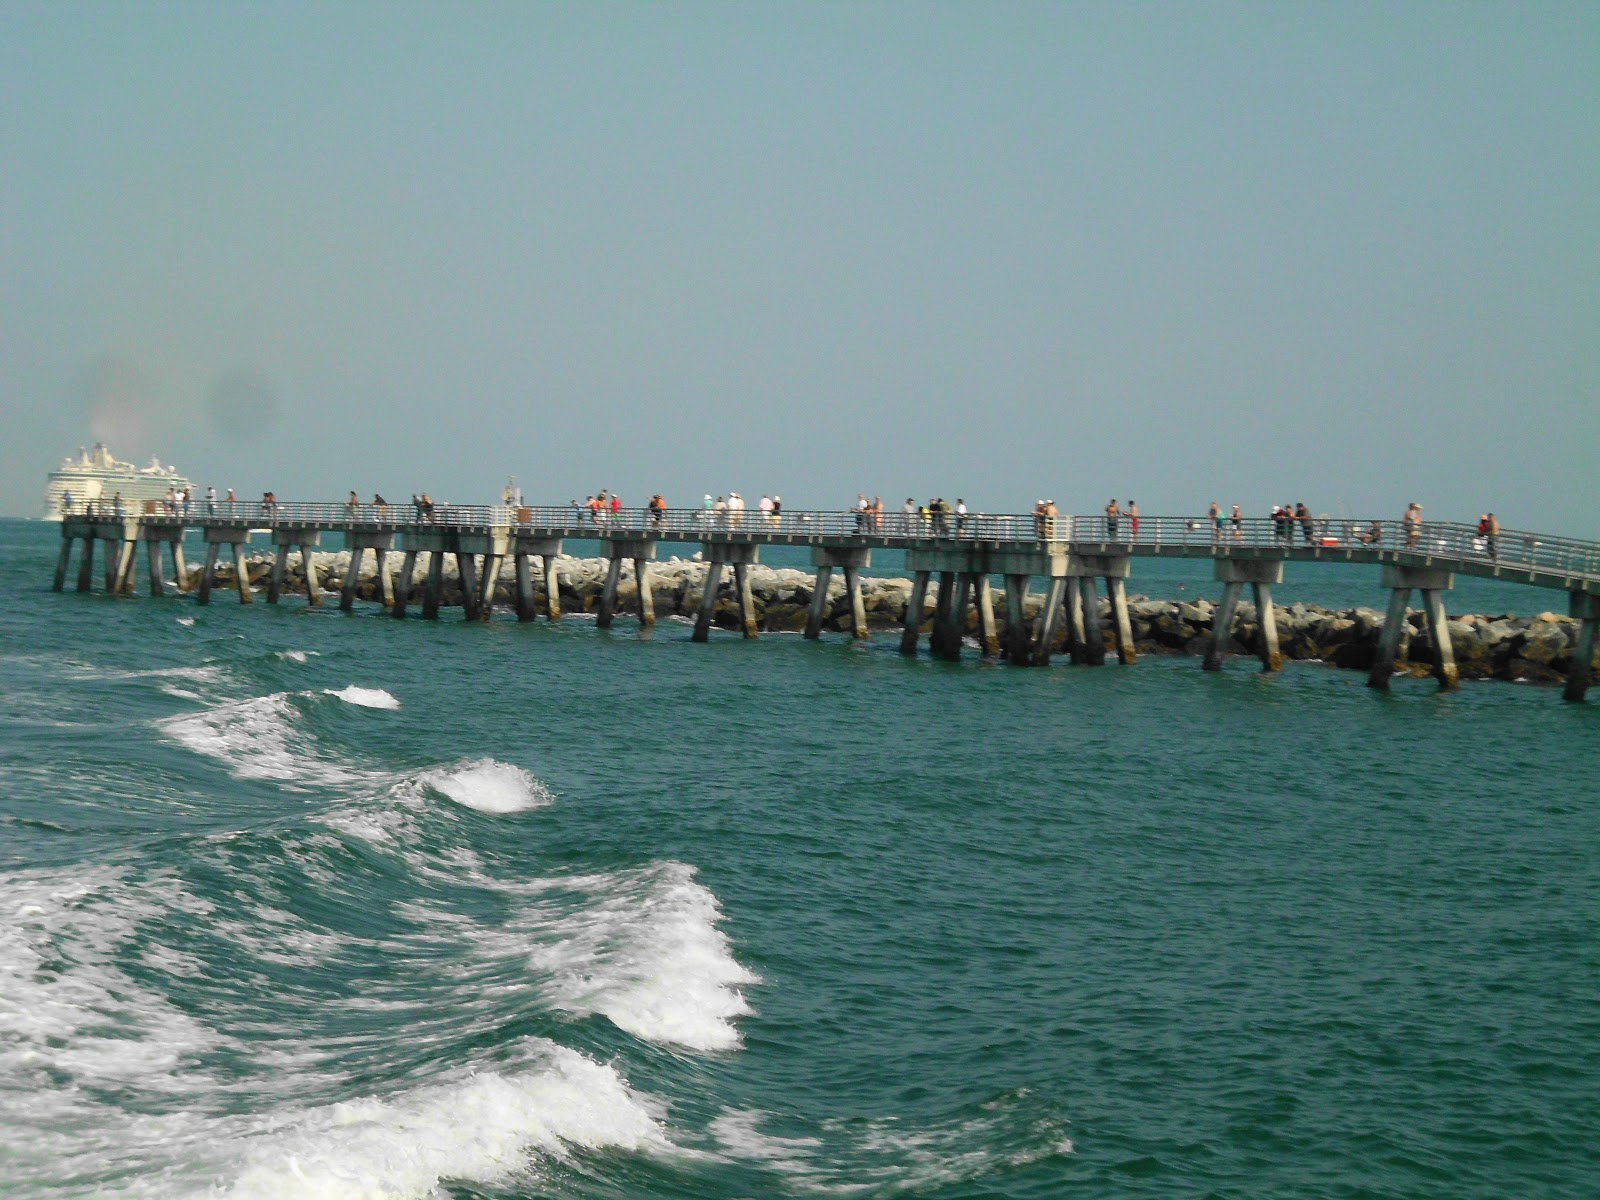 Busy day for boating and fishing in brevard for Cocoa beach fishing pier